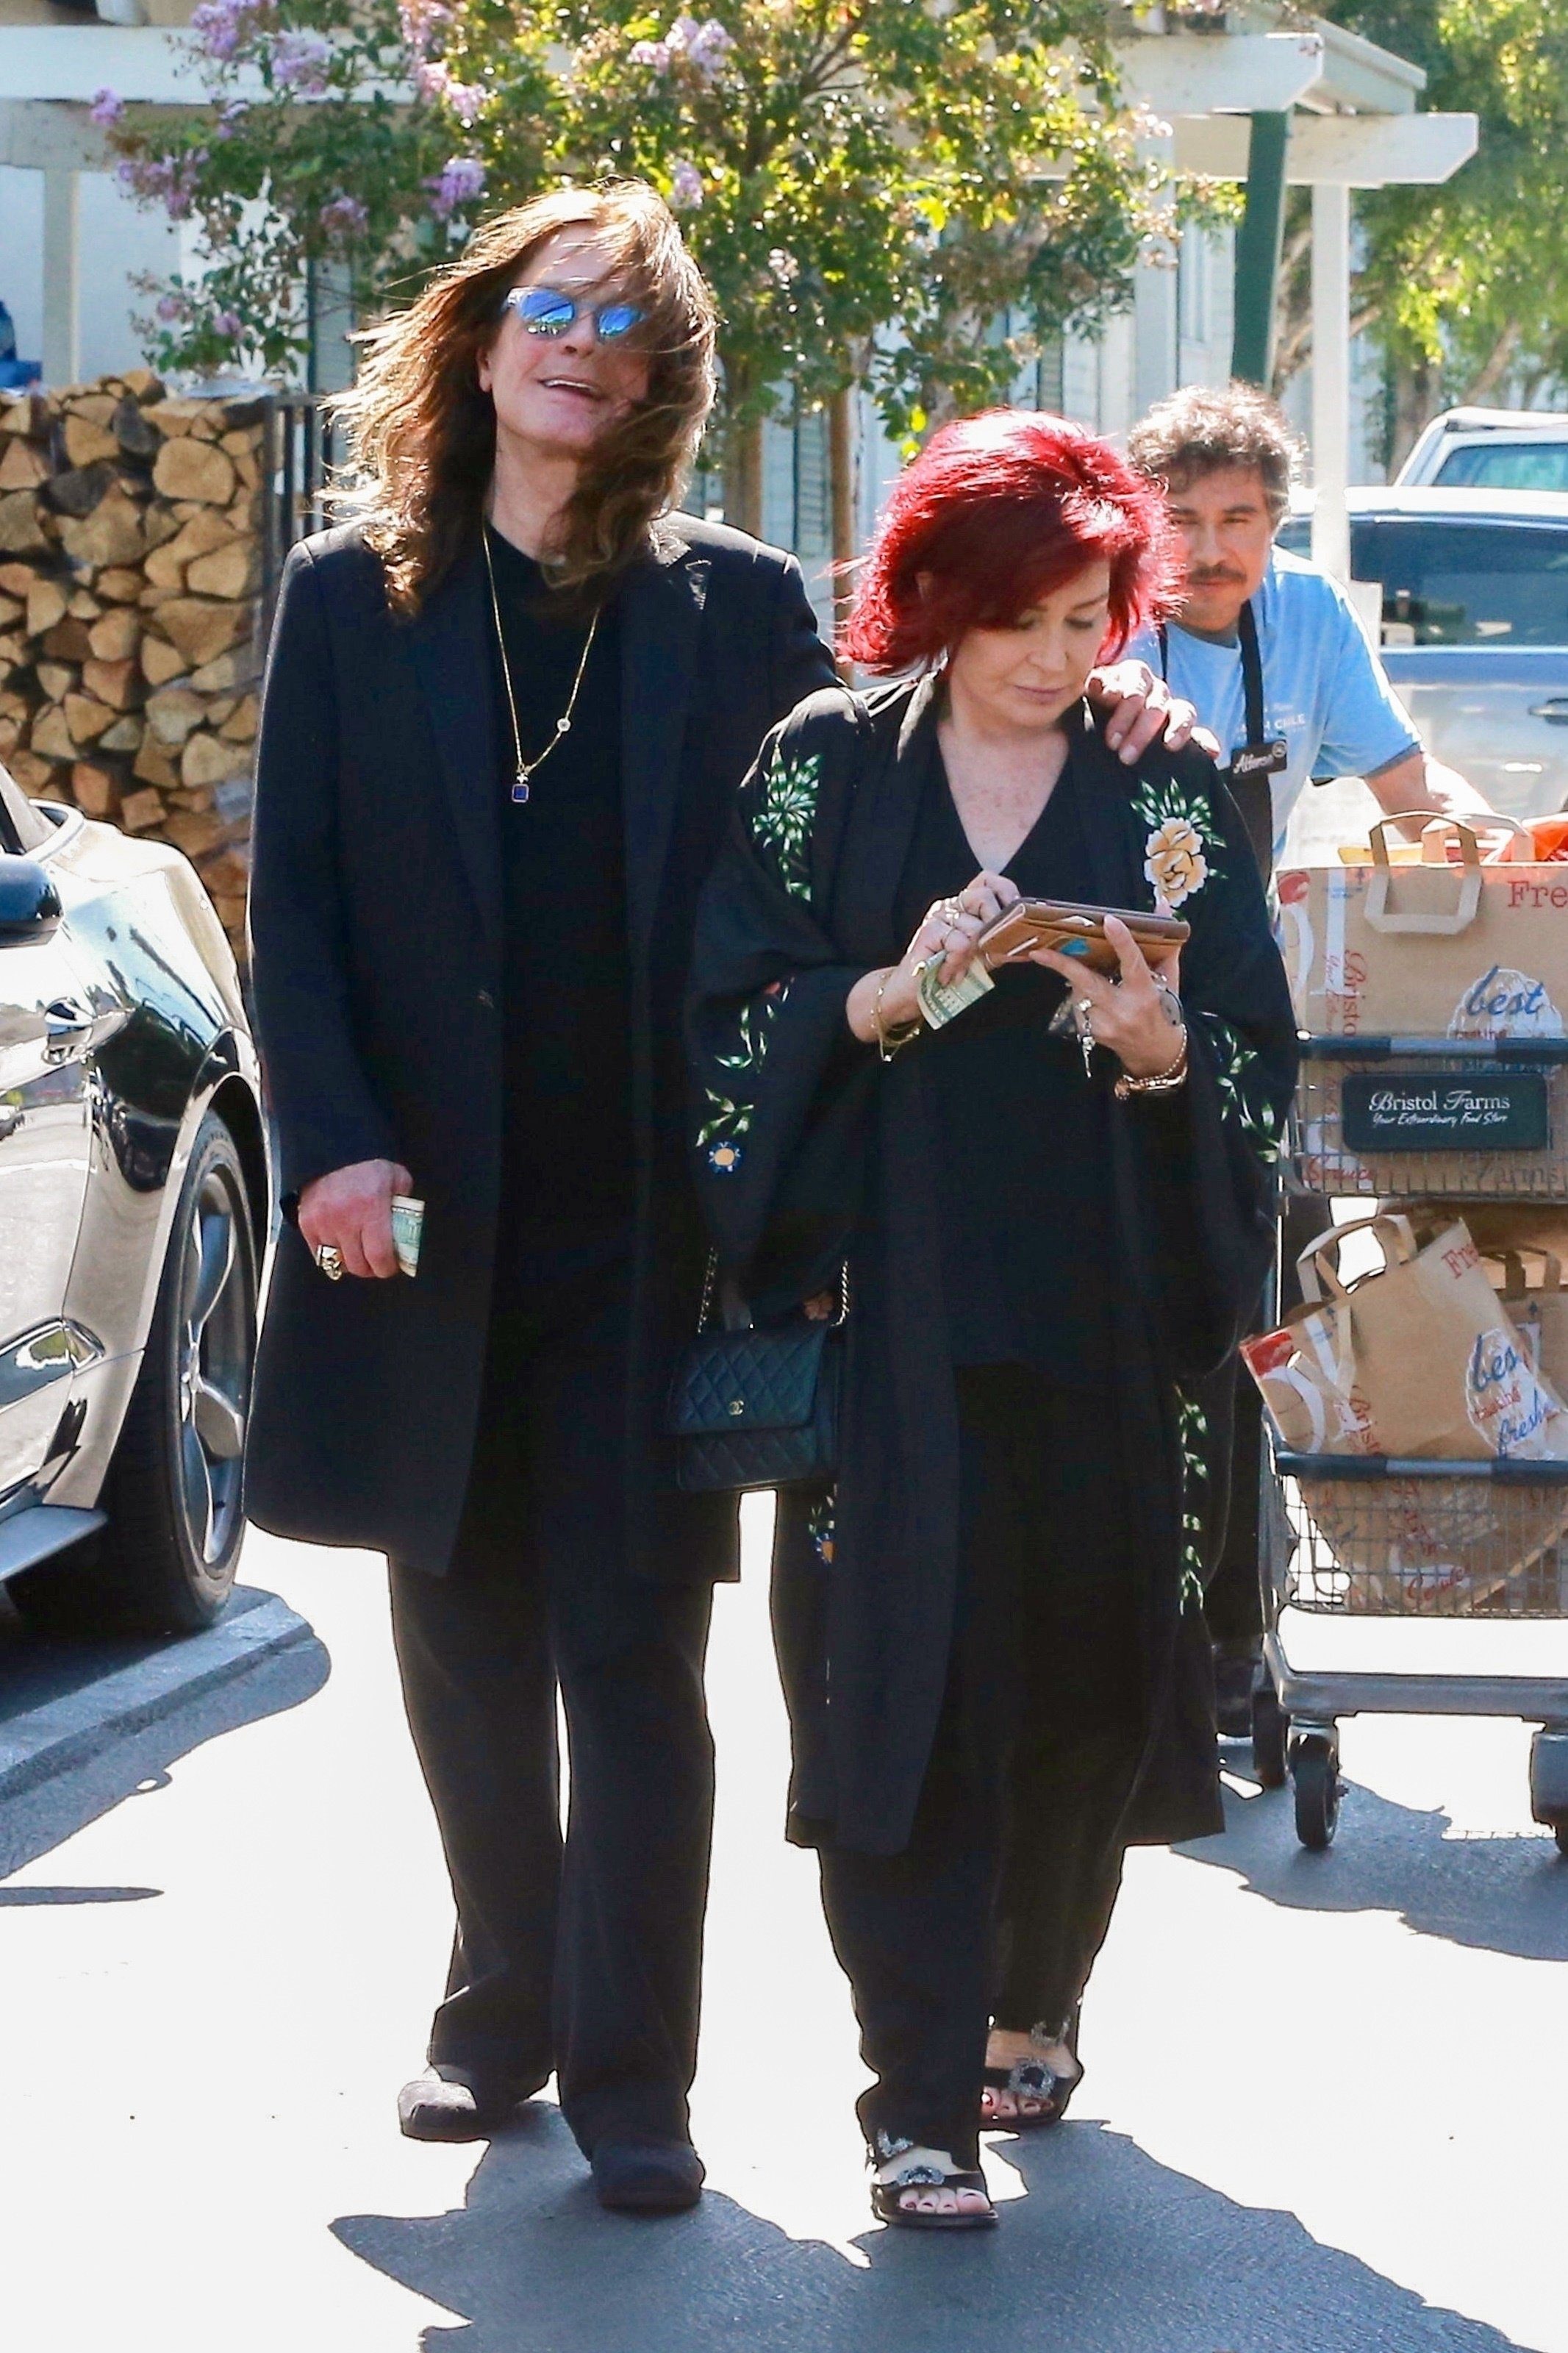 West Hollywood, CA  - *EXCLUSIVE* Sharon and Ozzy Osbourne do some grocery shopping at Bristol Farms in West Hollywood. Sharon and Ozzy return to their car with a full shopping cart and some help from a store employee, Ozzy smiles for the cameras as Sharon can't be bothered while checking her phone and wallet along the way.  Pictured: Sharon Osbourne, Ozzy Osbourne  BACKGRID USA 19 AUGUST 2017   USA: +1 310 798 9111 / usasales@backgrid.com  UK: +44 208 344 2007 / uksales@backgrid.com  *UK Clients - Pictures Containing Children Please Pixelate Face Prior To Publication*, Image: 345910736, License: Rights-managed, Restrictions: , Model Release: no, Credit line: Profimedia, AKM-GSI